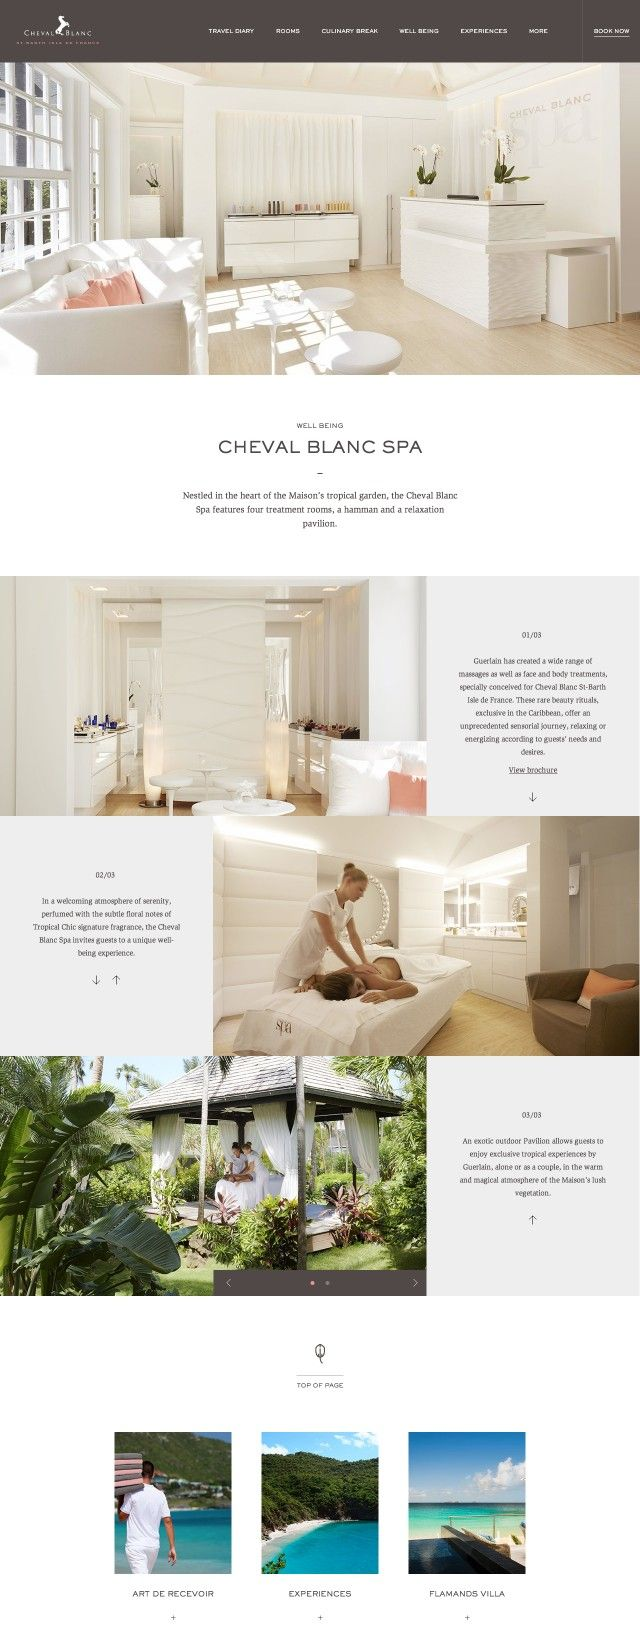 Are These The Best 12 Hotel Website Designs In 2015